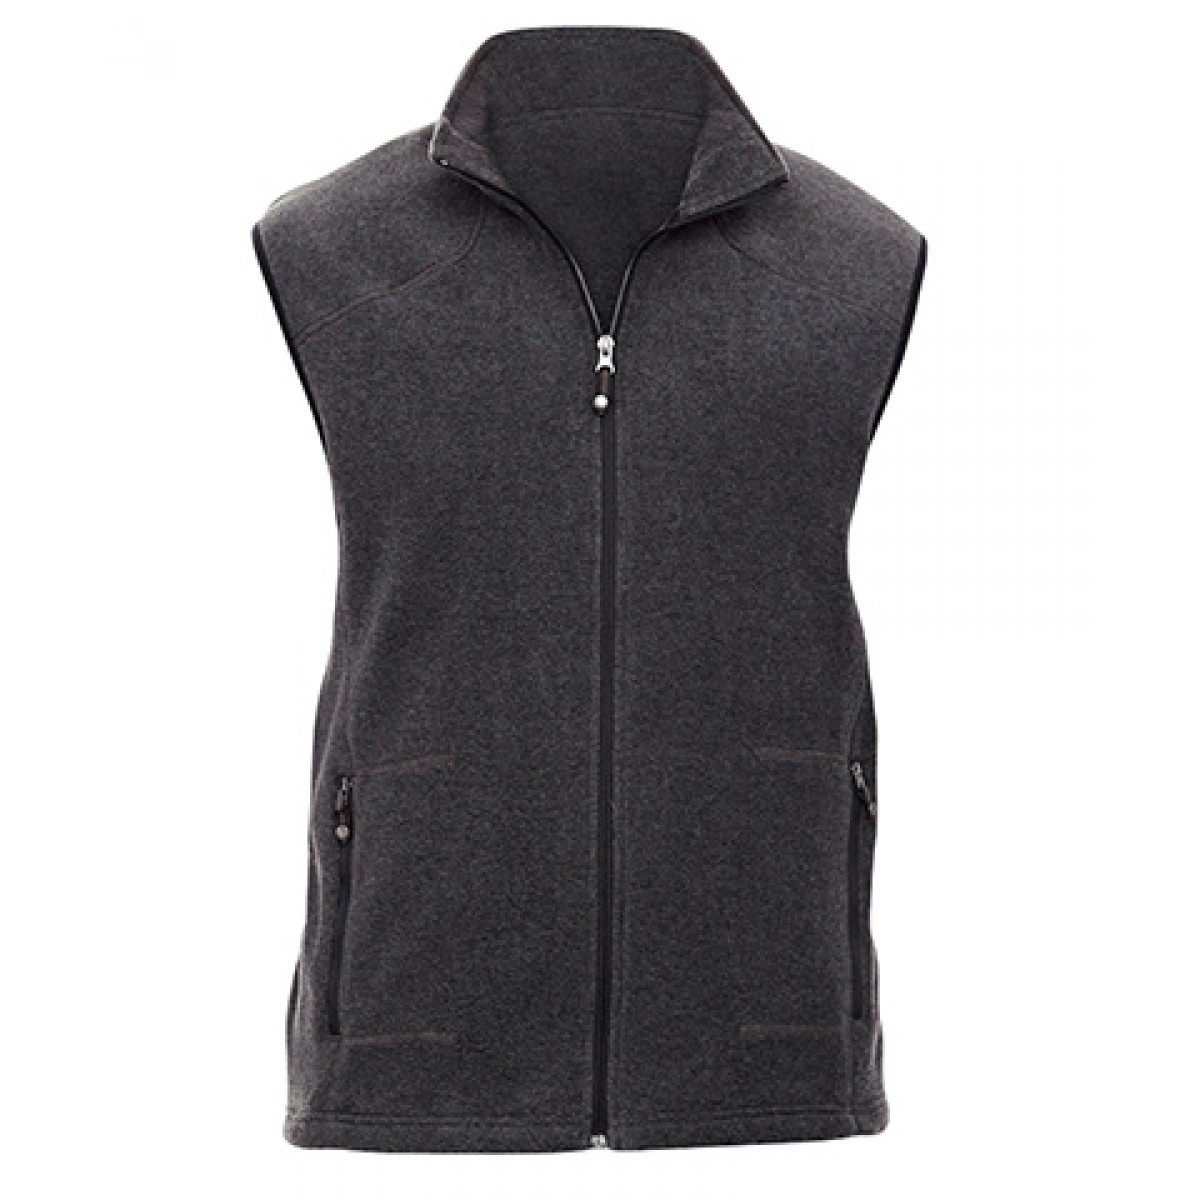 Men's Voyage Fleece Vest-Gray -4XL